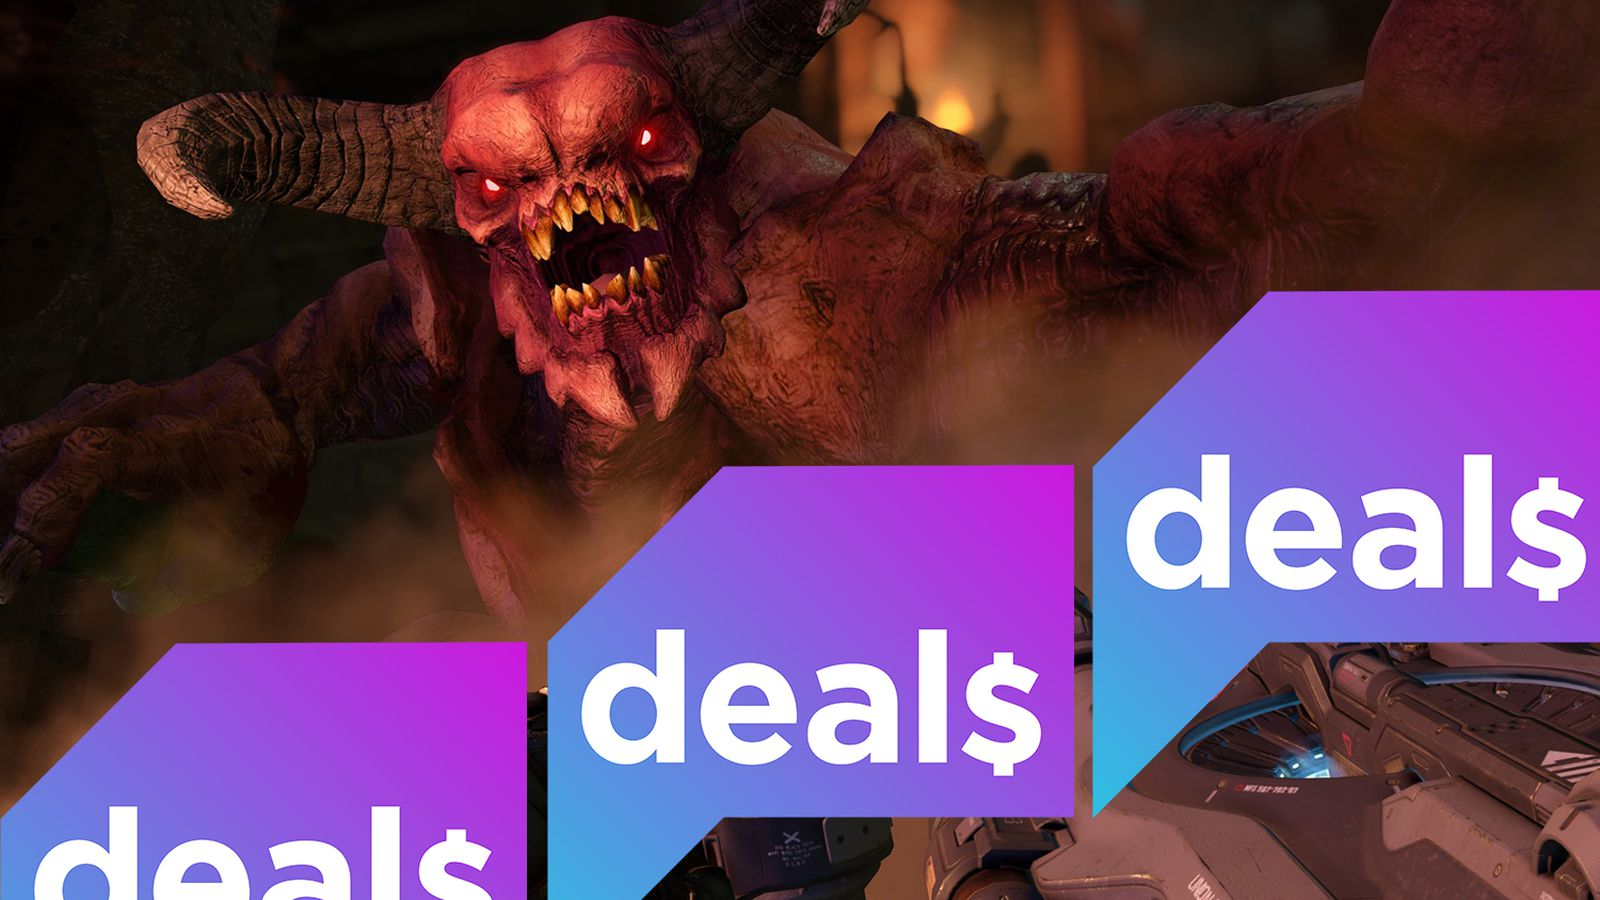 Big discounts at the Green Man Gaming Summer Sale, Doom markdowns, and more game deals